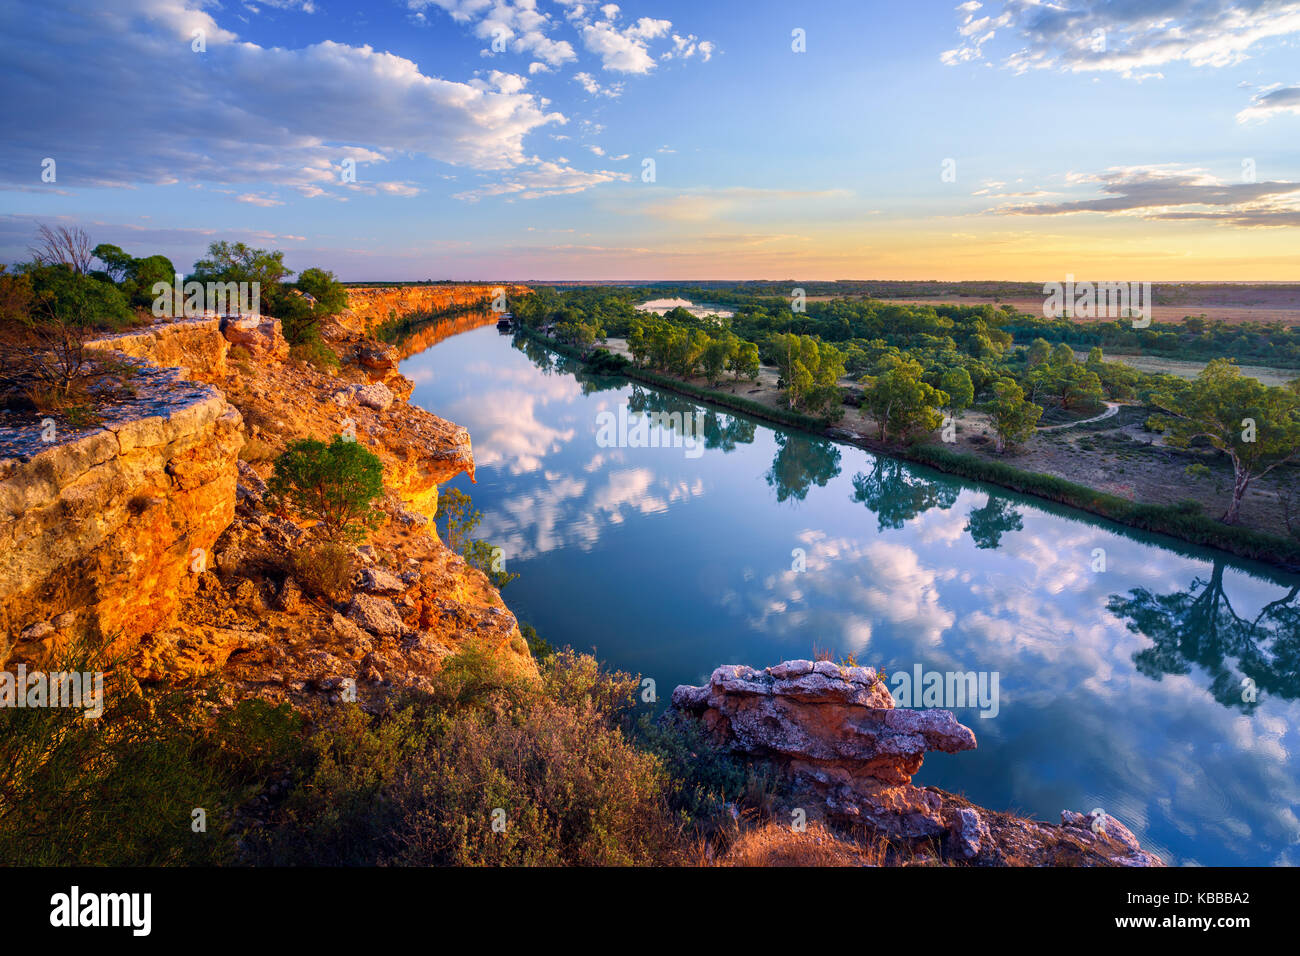 Murray River Sunset Photo Stock